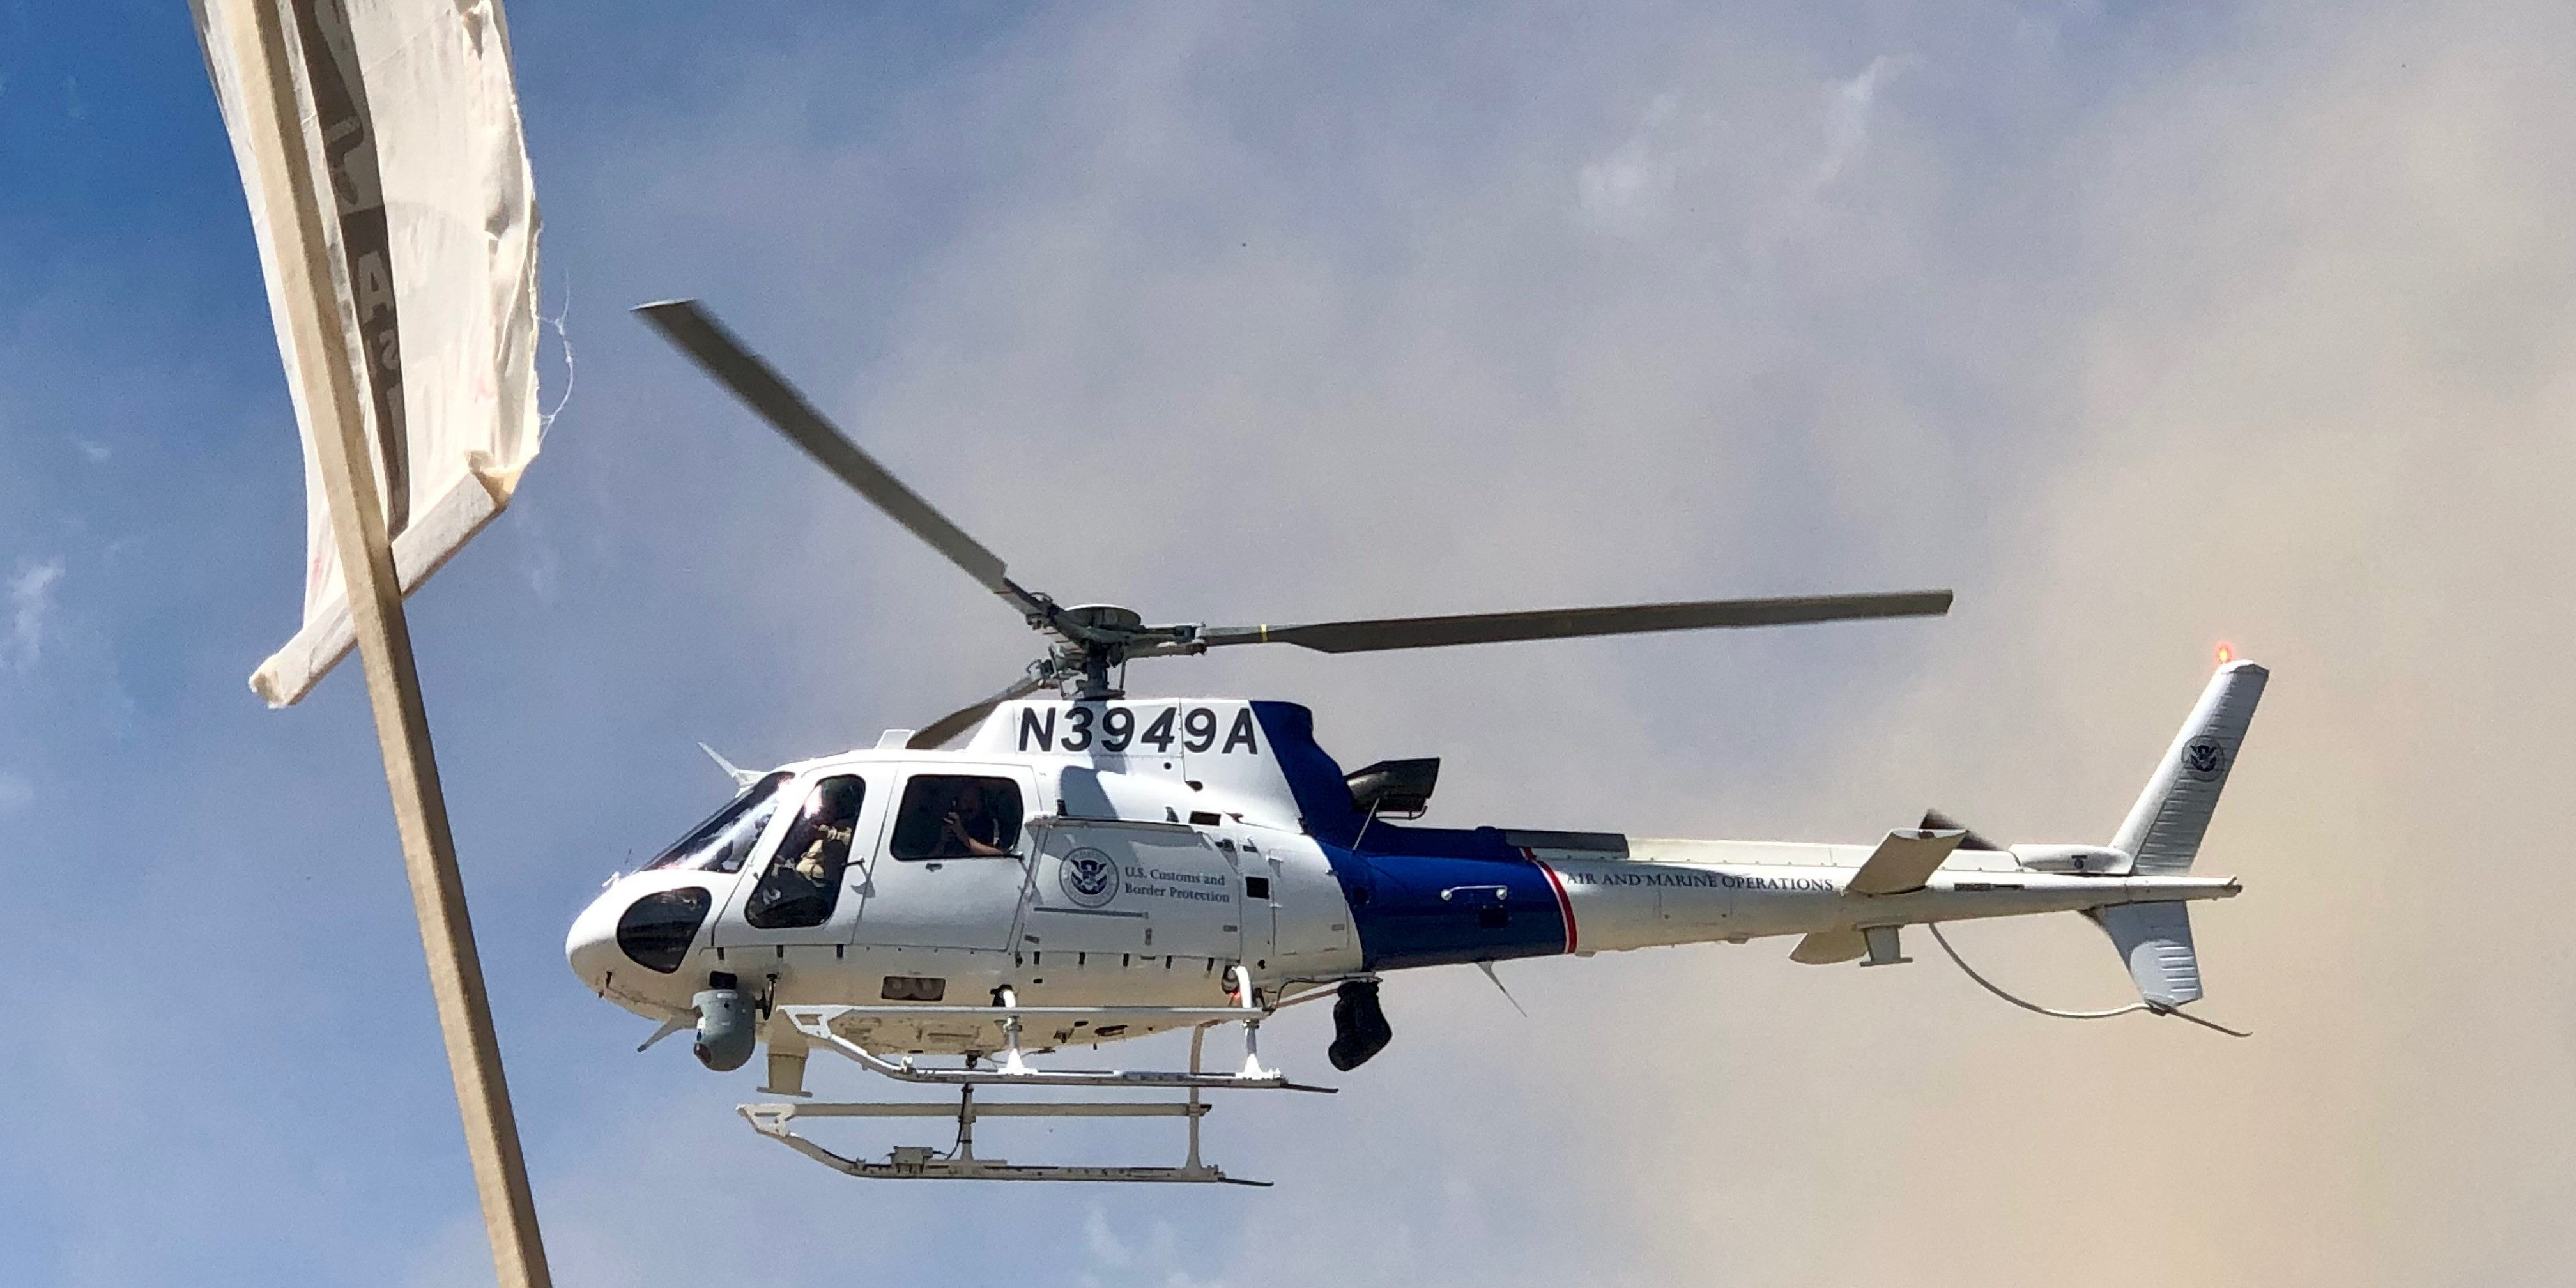 Low-Flying DHS Helicopter Showers Anti-Pipeline Protests With Debris